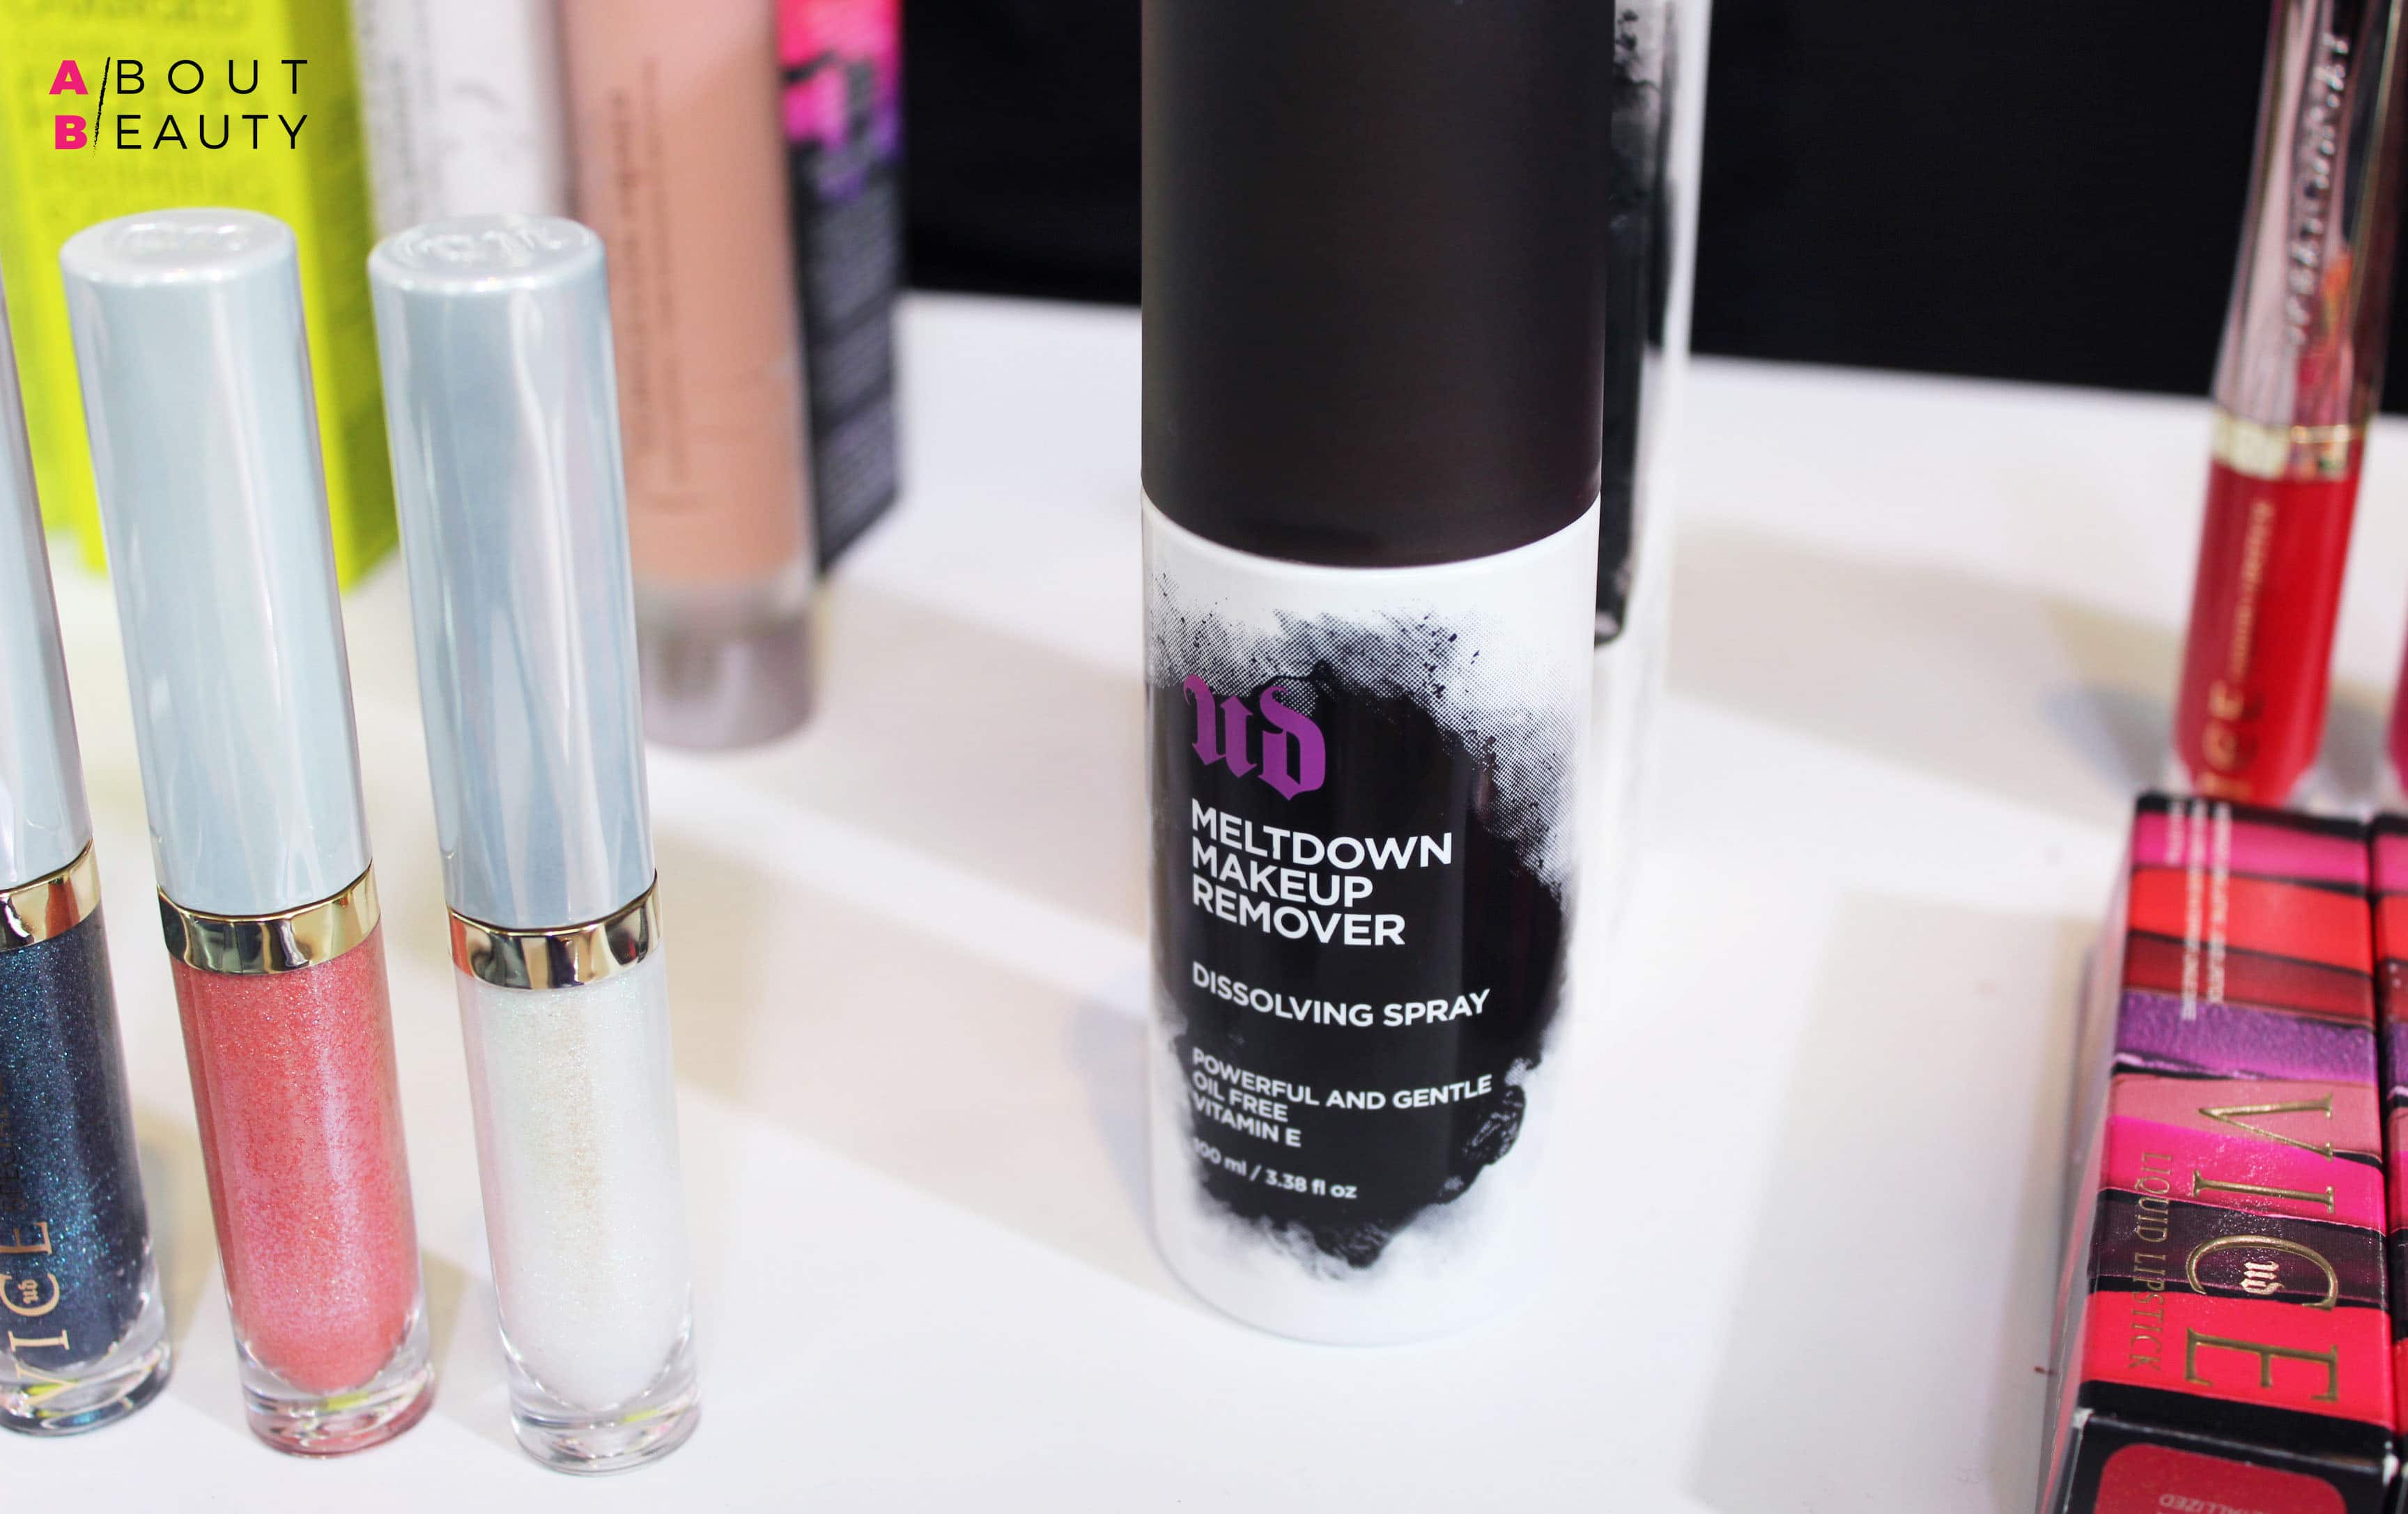 Urban Decay Meltdown Make-up Remover Spray